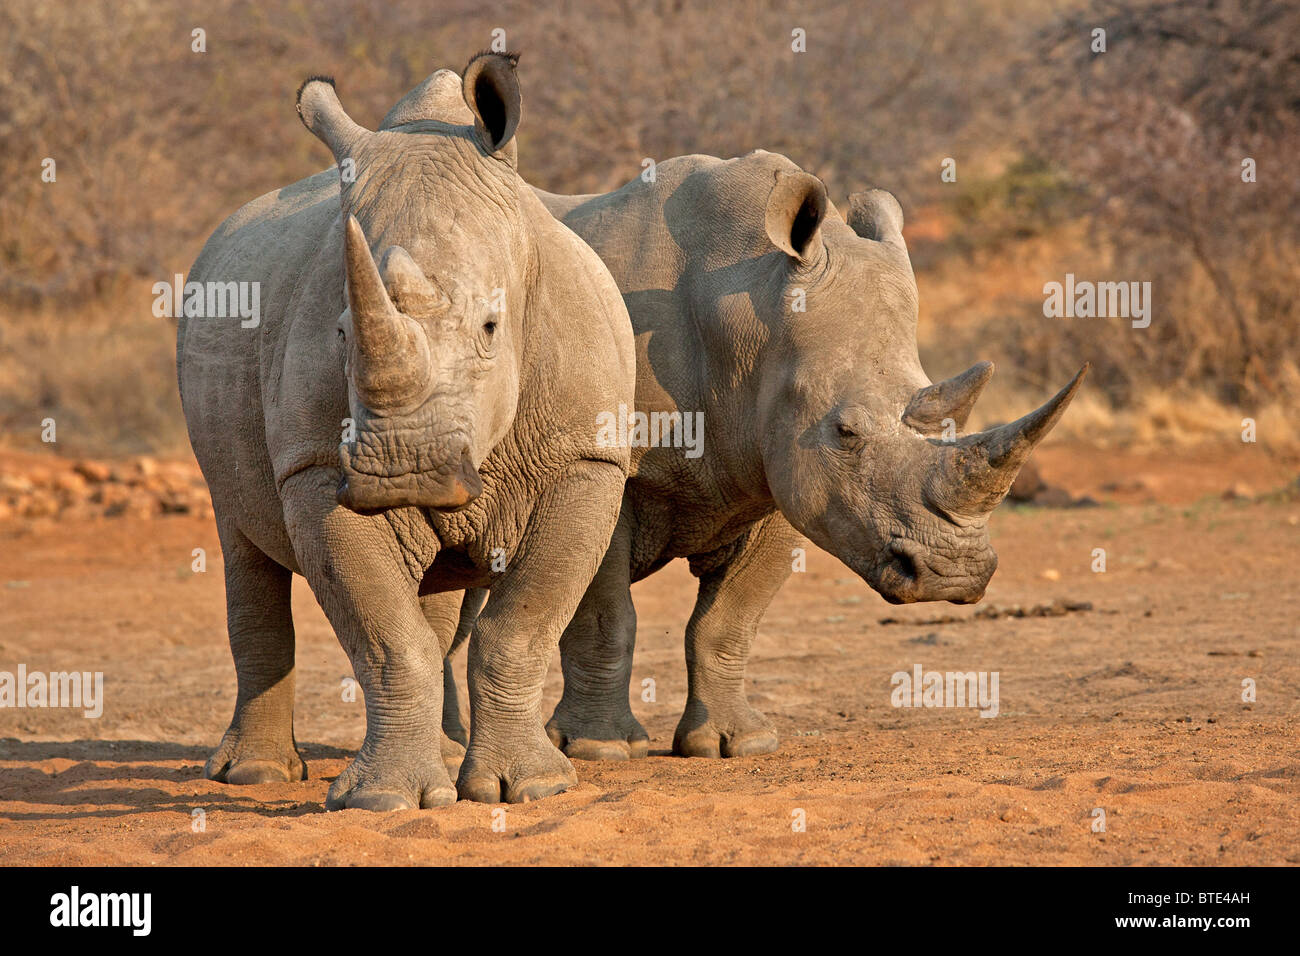 White Rhinos in the Kruger National Park, South Africa - Stock Image